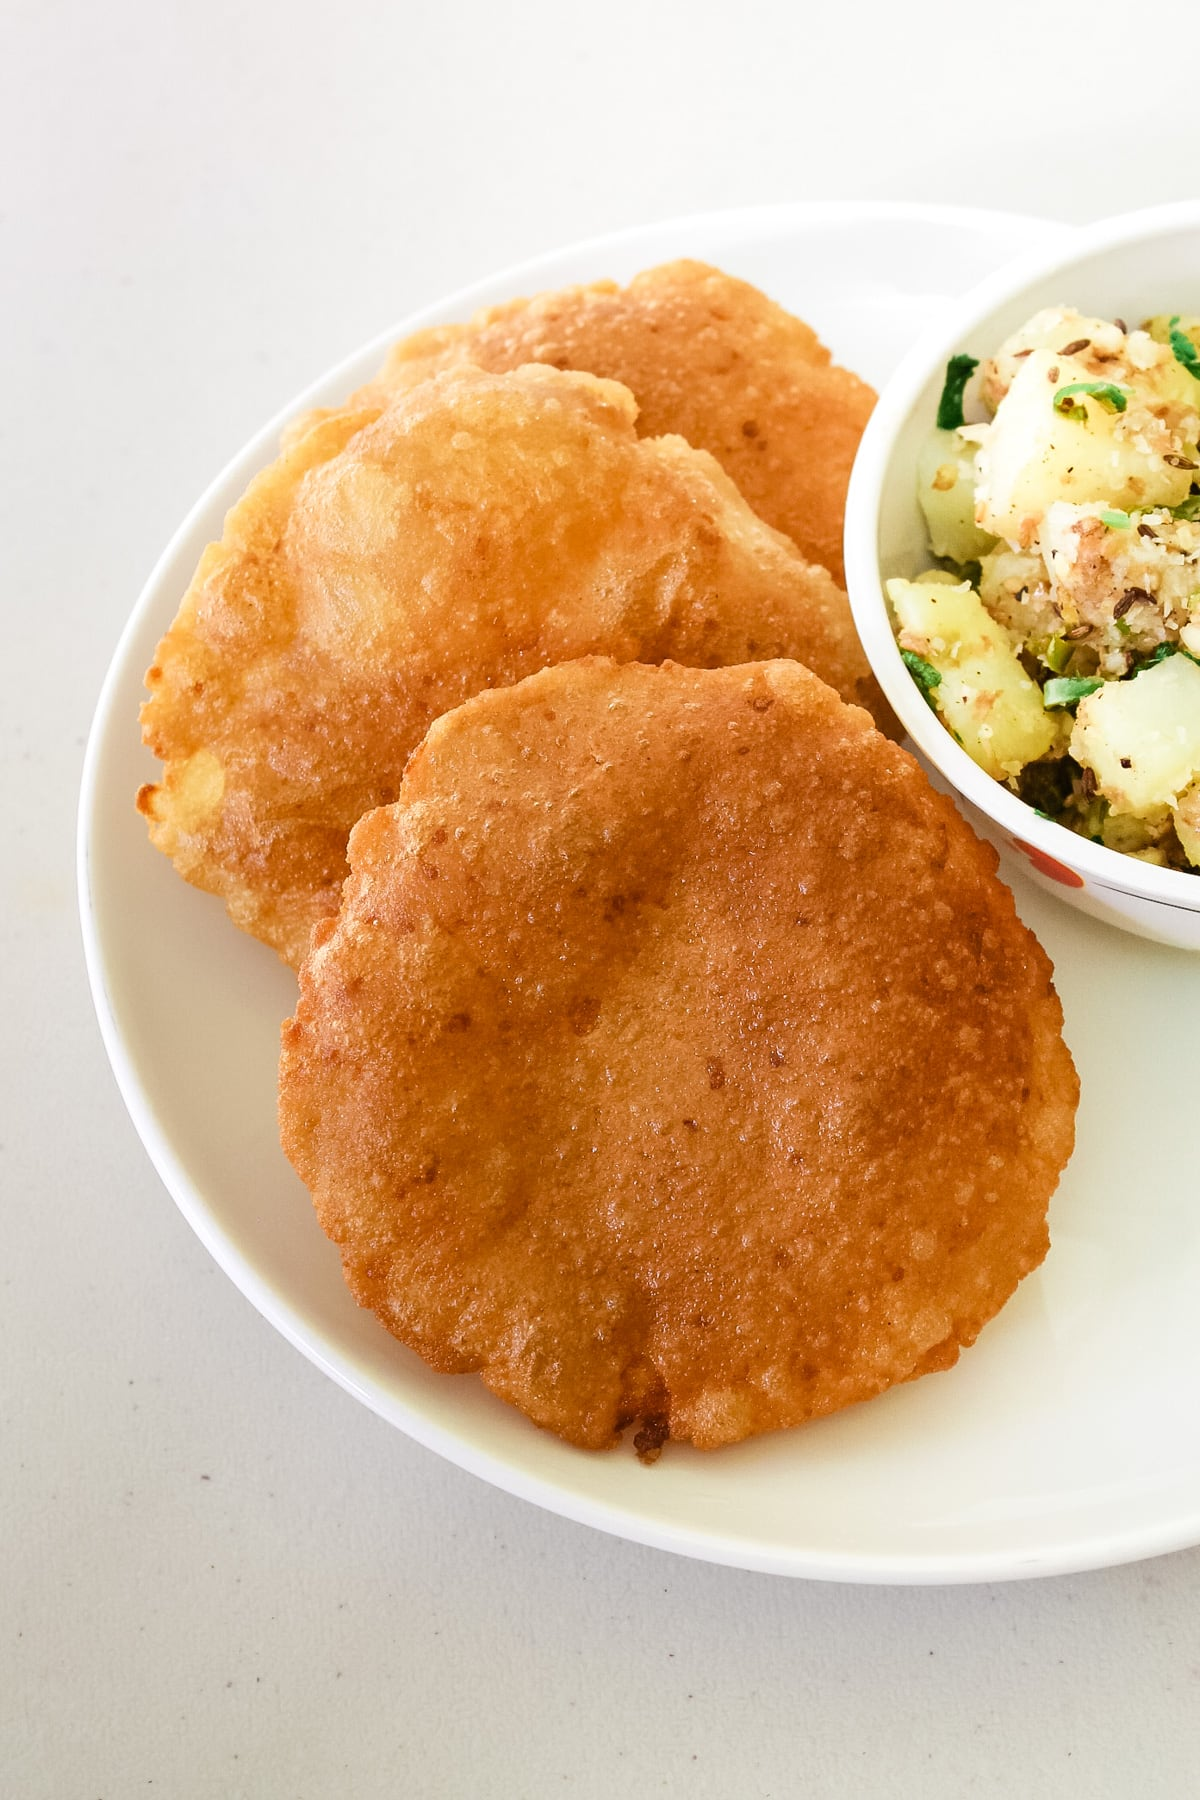 Rajgira puri in a plate with side of sukhi bhaji